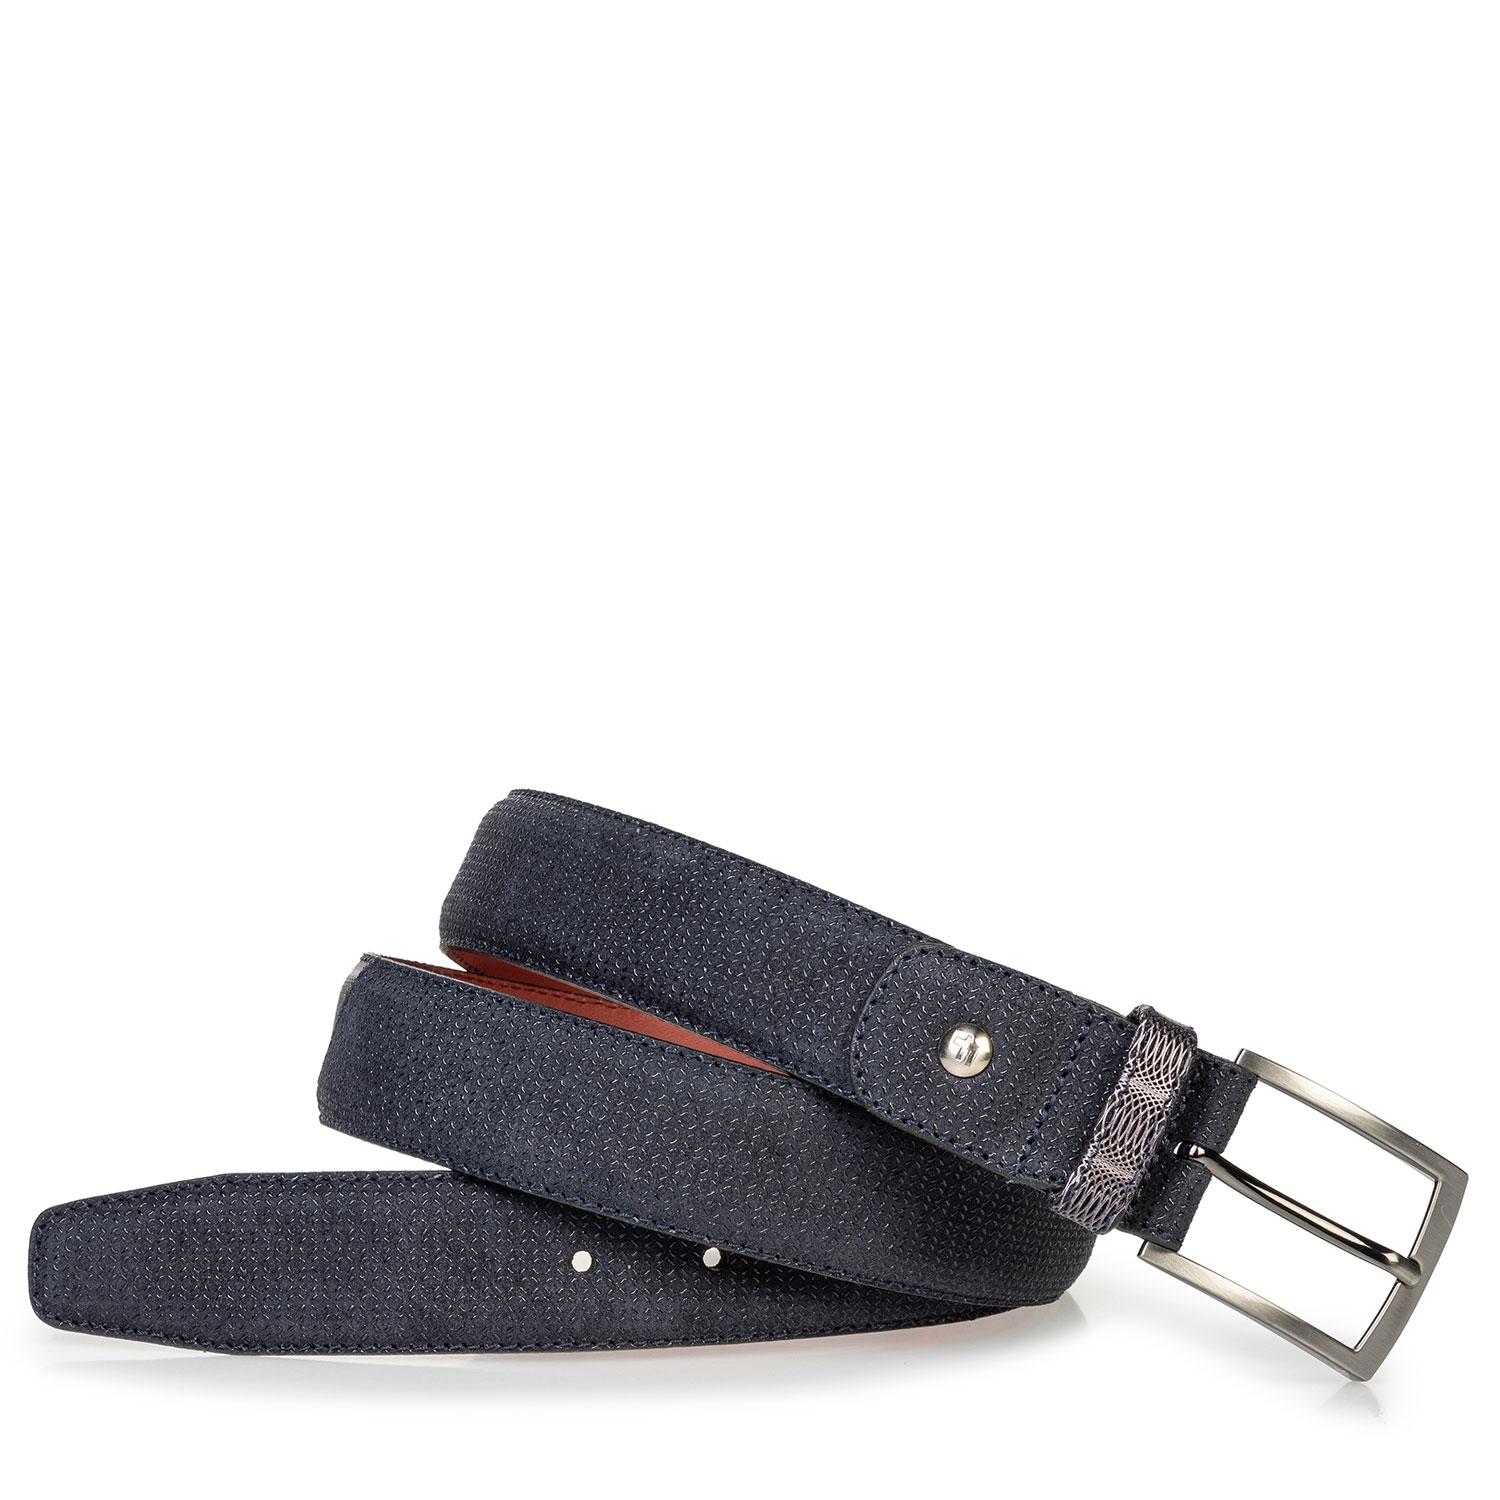 75188/74 - Suede leather belt blue with print